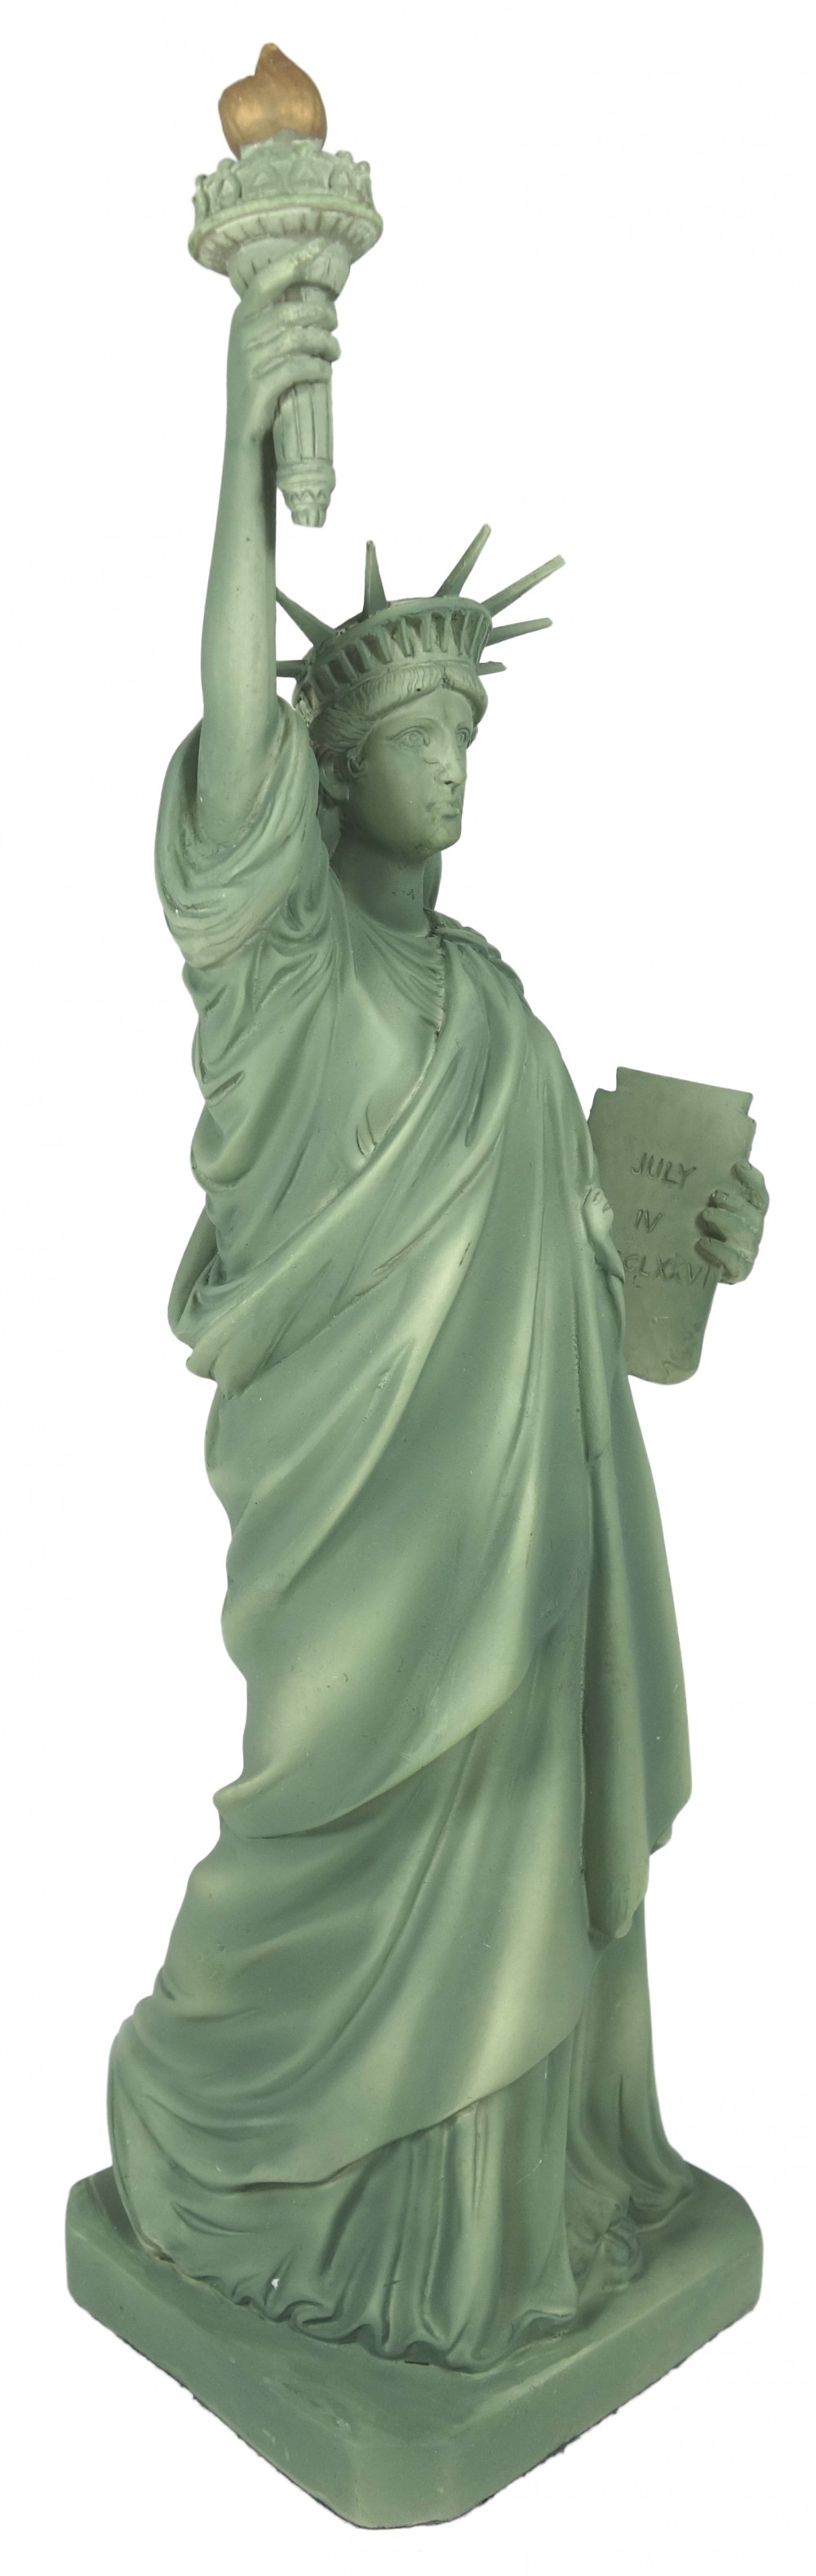 Figur Statue of Liberty Freiheitsstatue grün New York Dekoration 30 cm